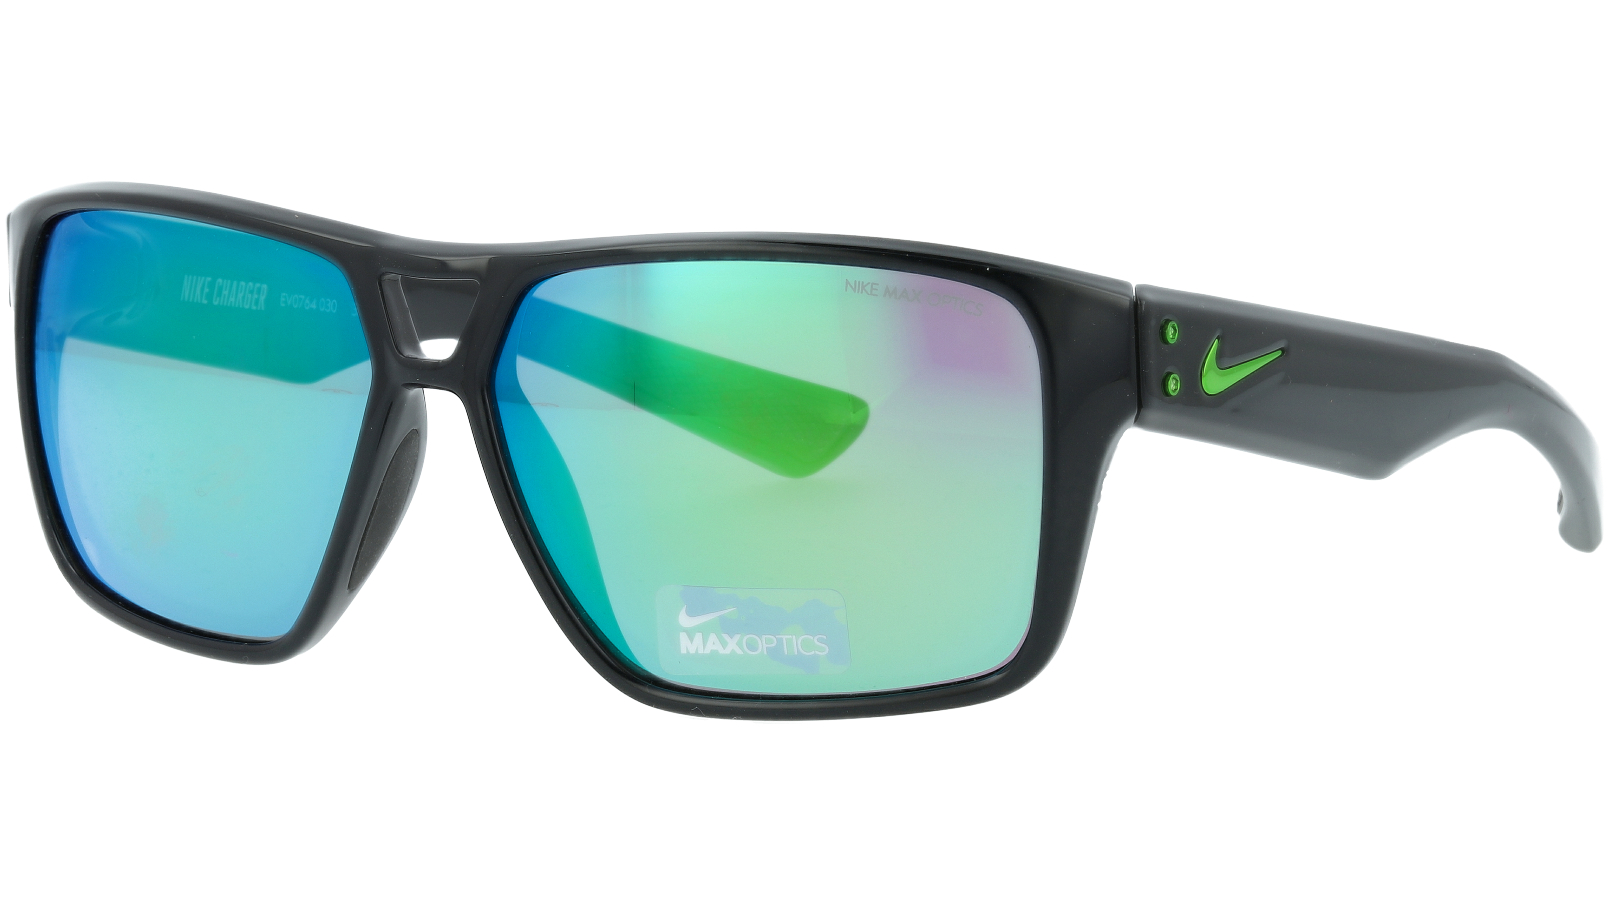 NIKE EV0764 030 59 BLACK Sunglasses